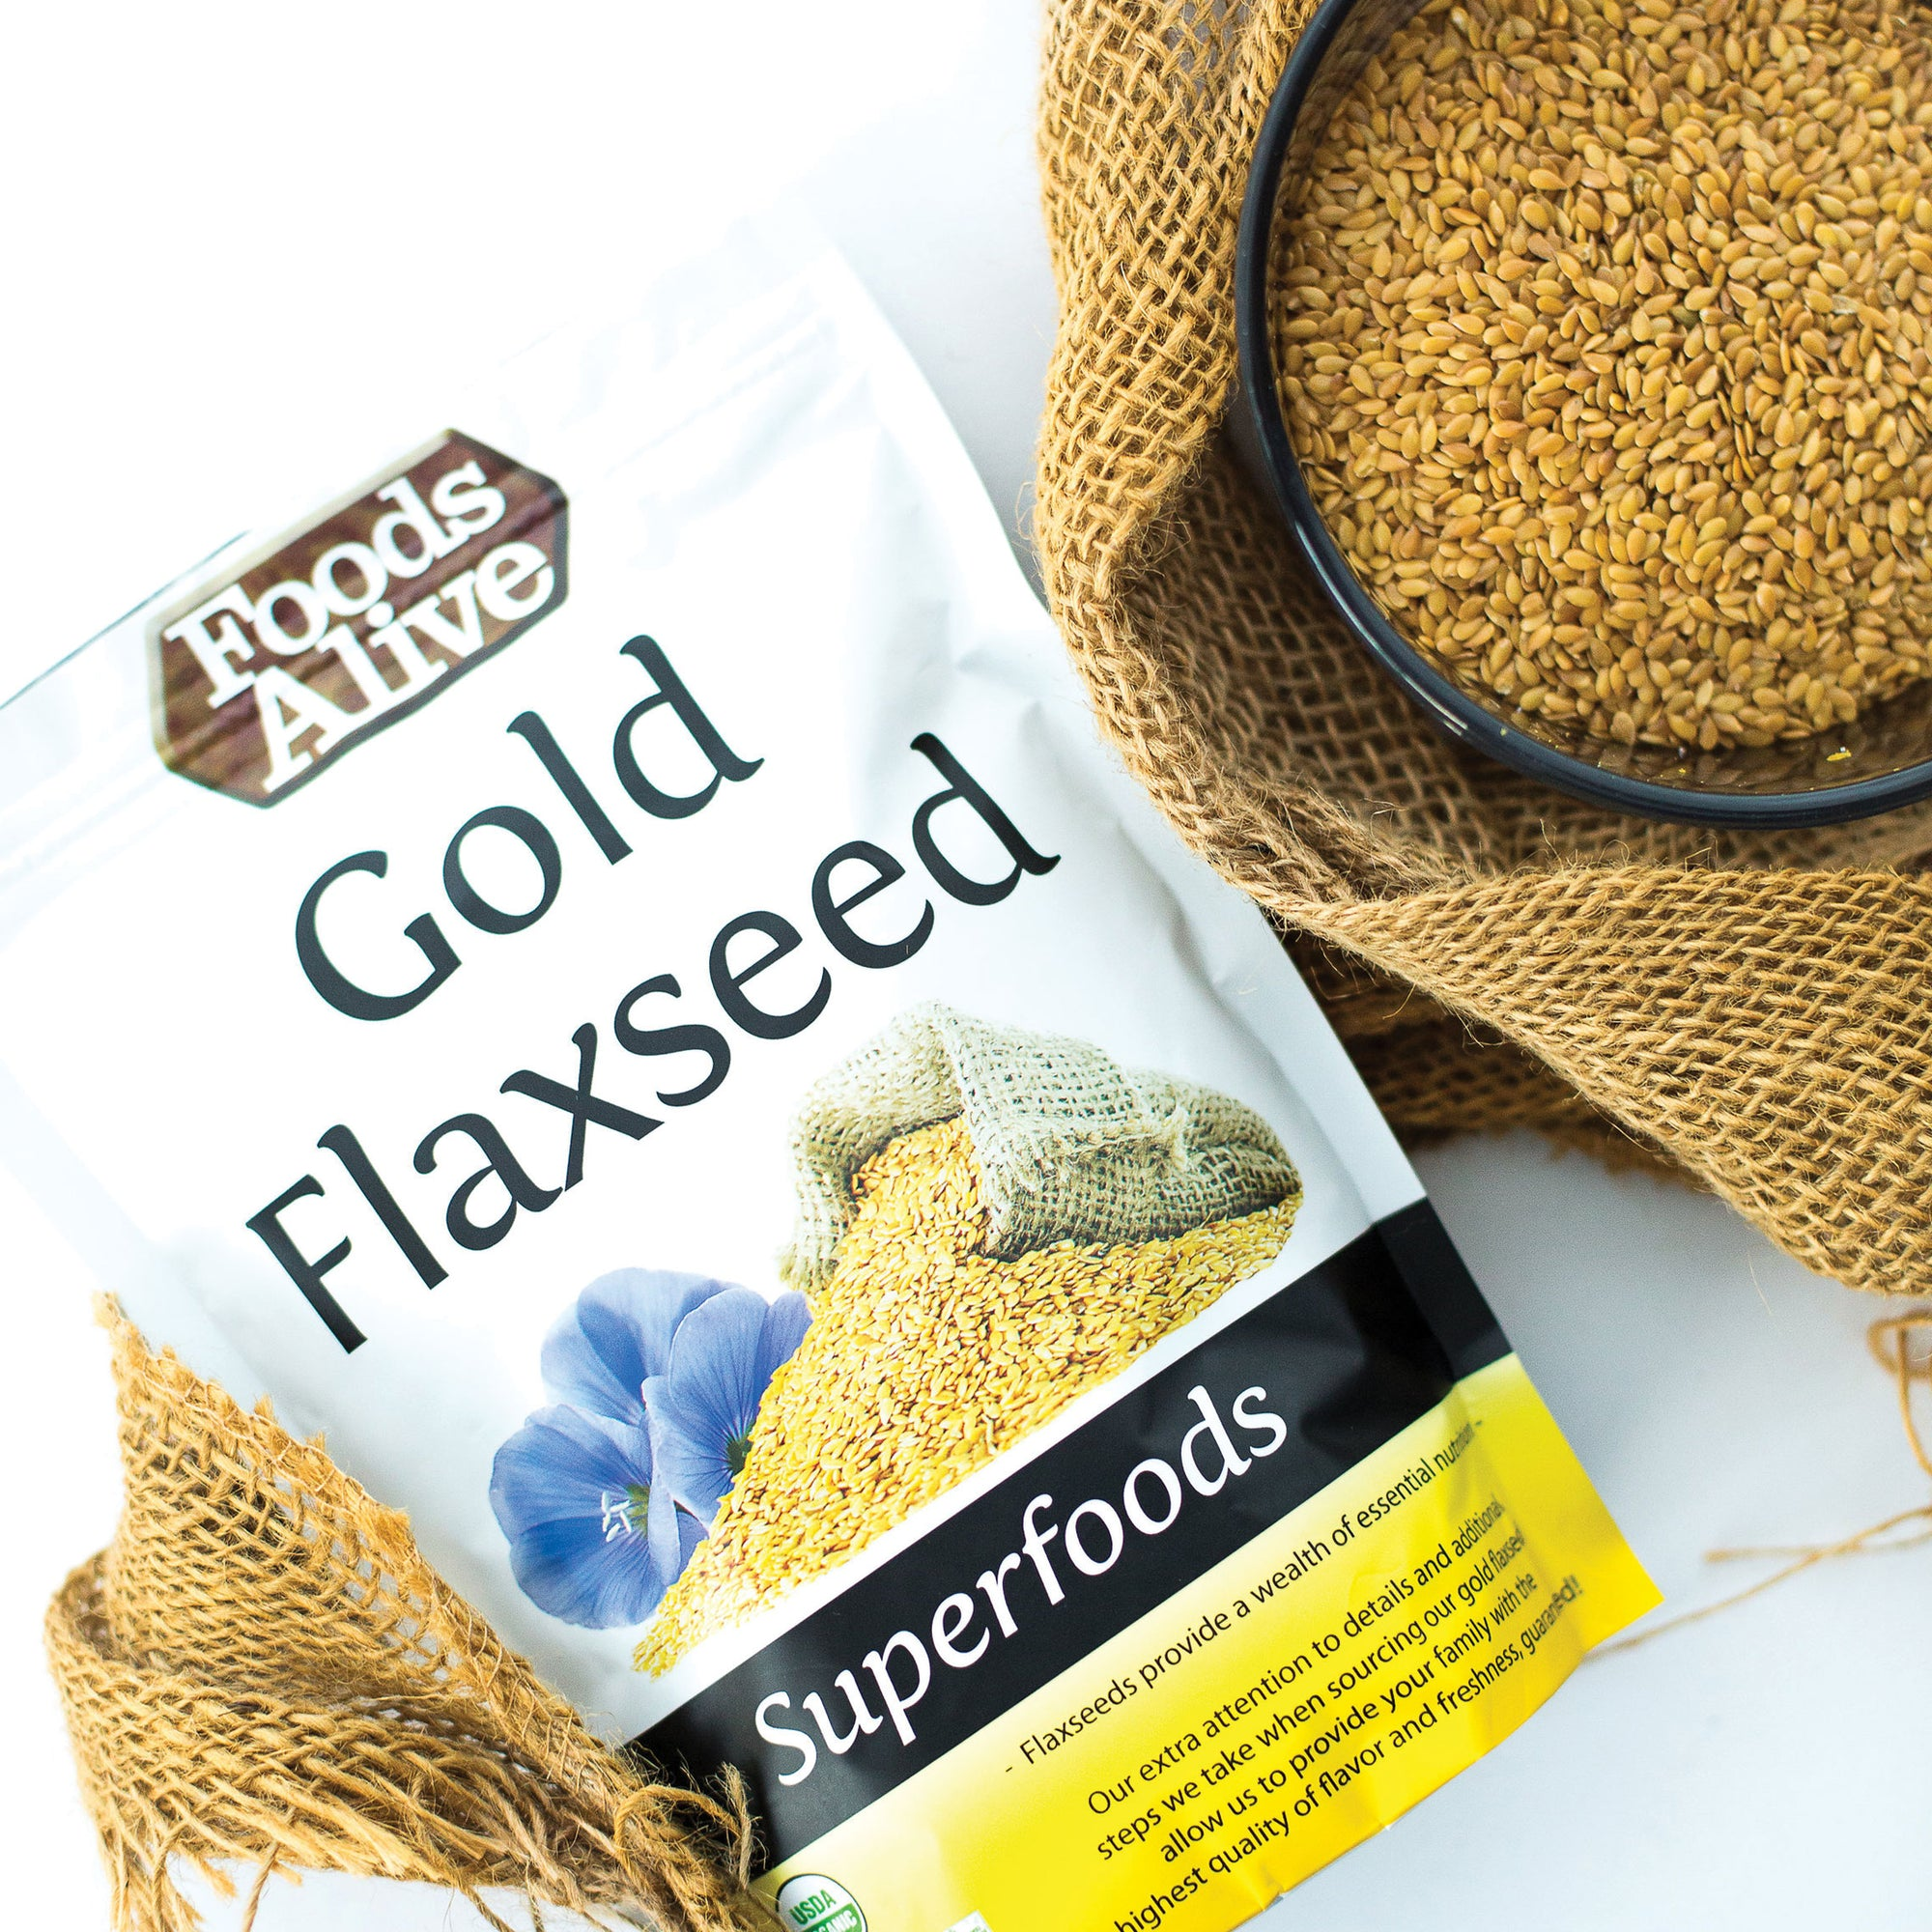 Foods Alive - Organic Golden Flax Seed - 14 oz